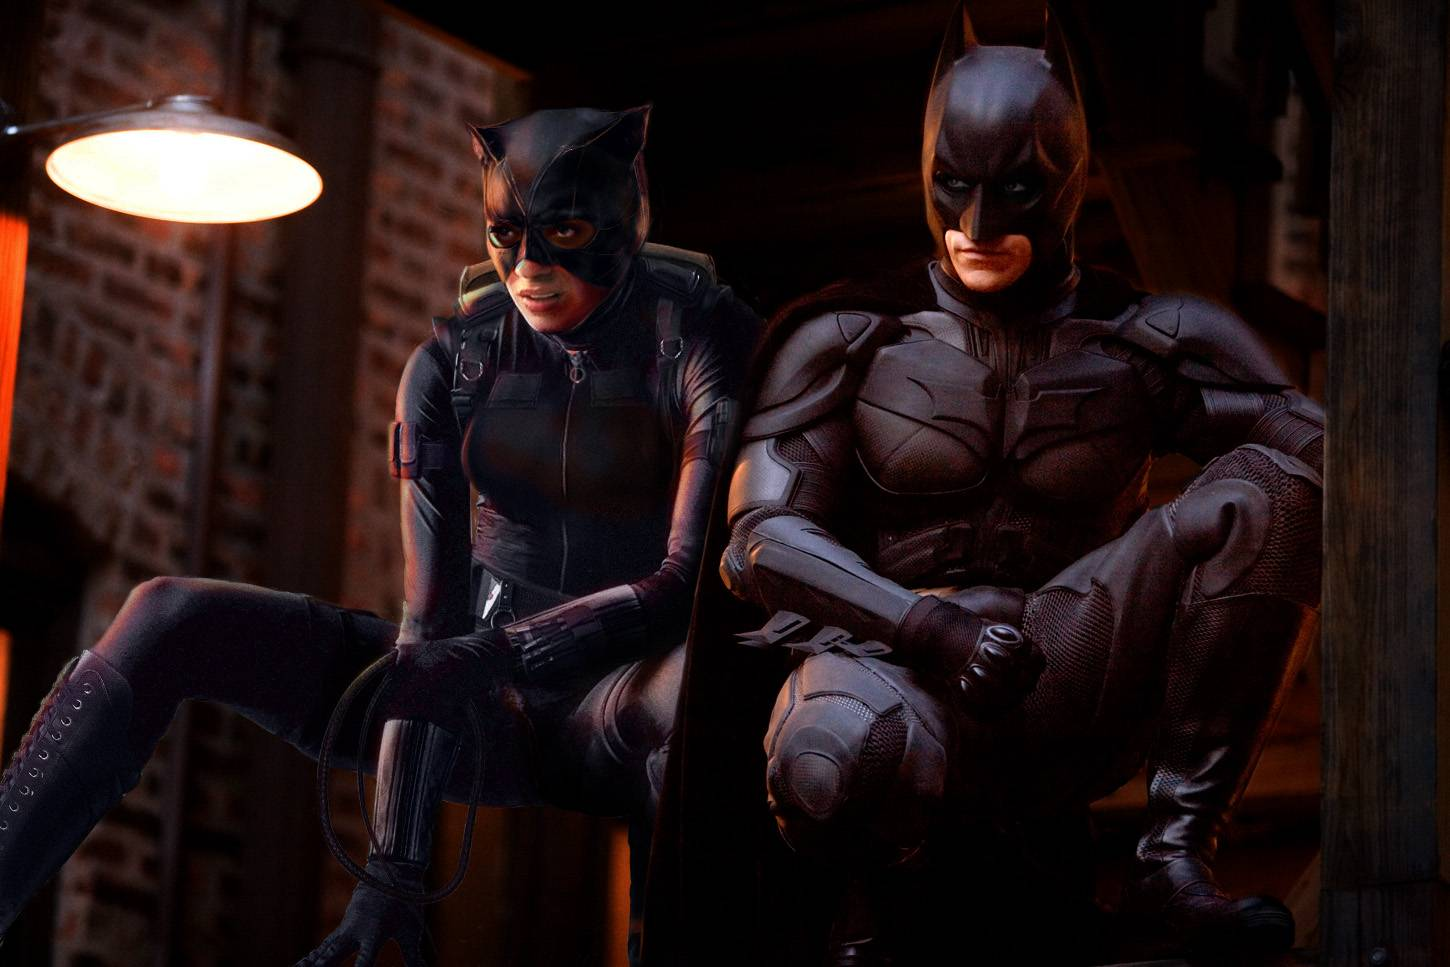 batman and catwoman batman and catwoman image 1450x967